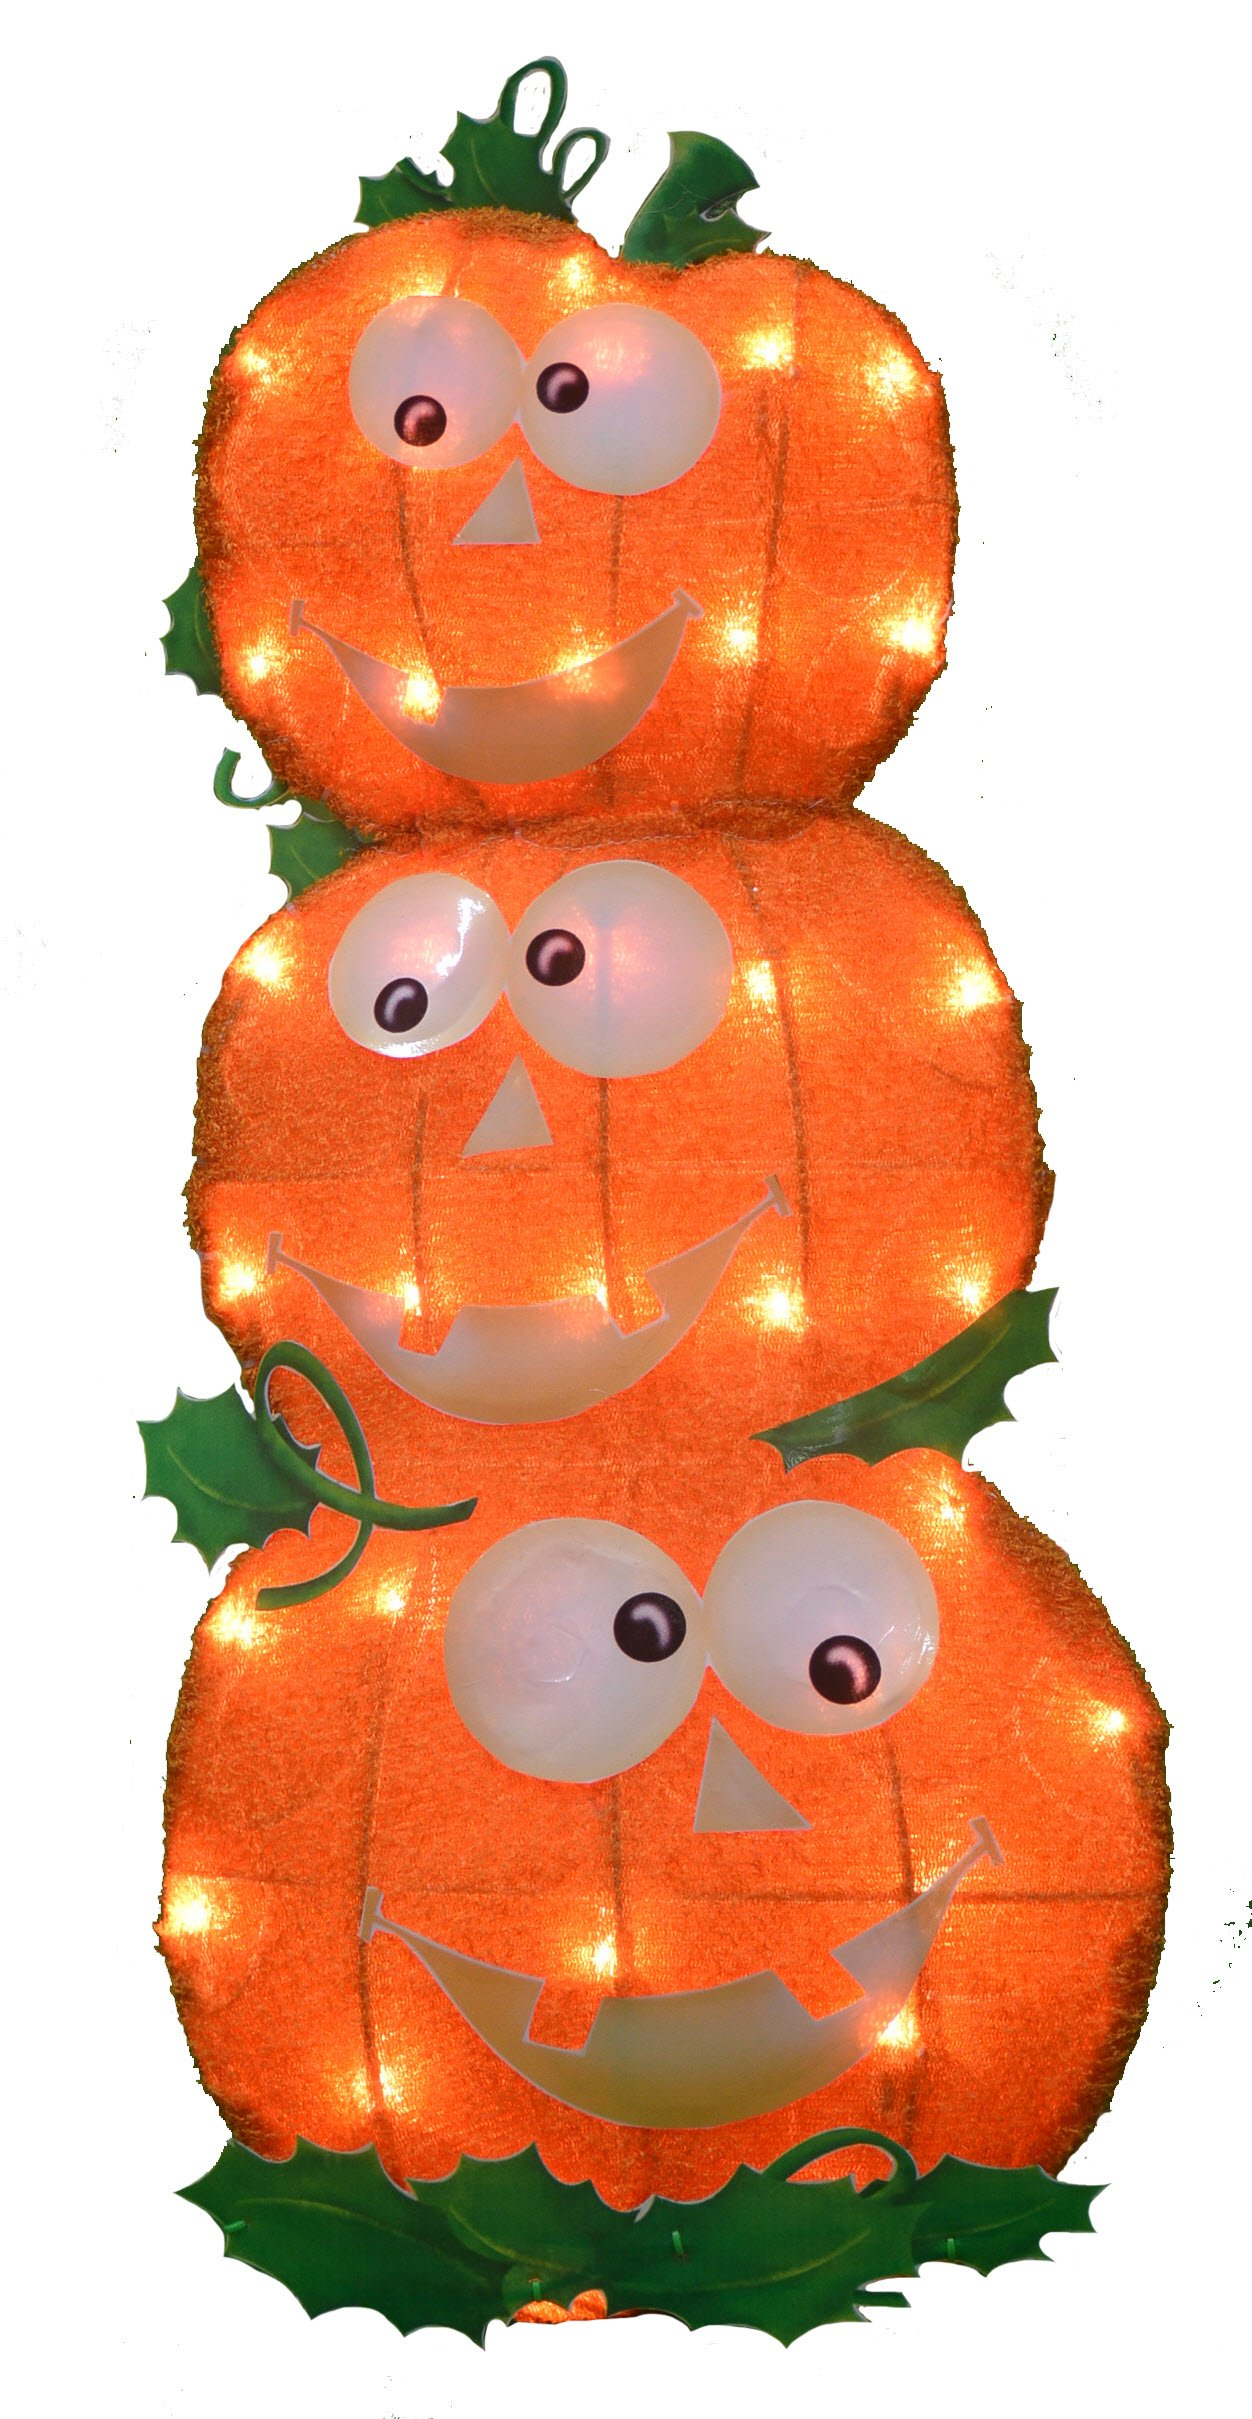 ProductWorks 24-Inch Pre-Lit 2D Victoria Hutto Pumpkin Stack Yard Decoration, 35 Lights